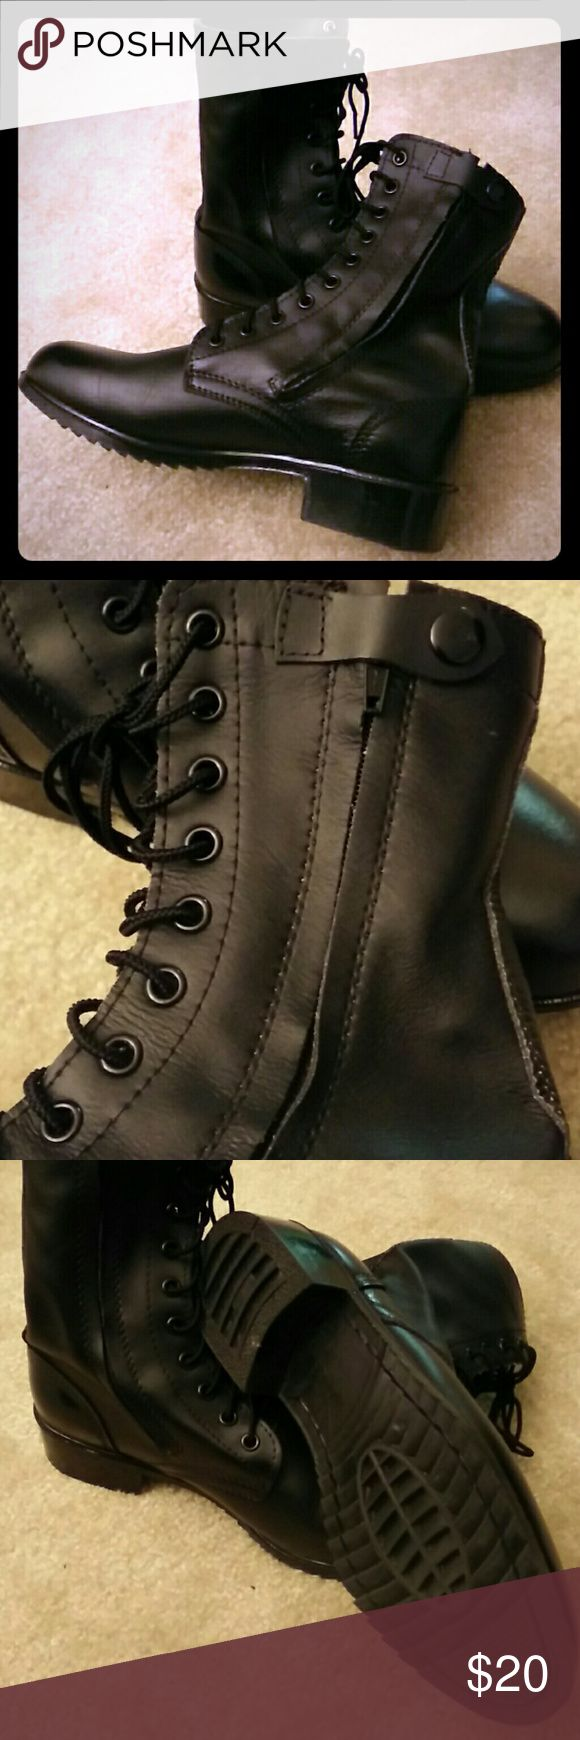 Combat boots for men Brand new combat boots for men. Shoes Boots